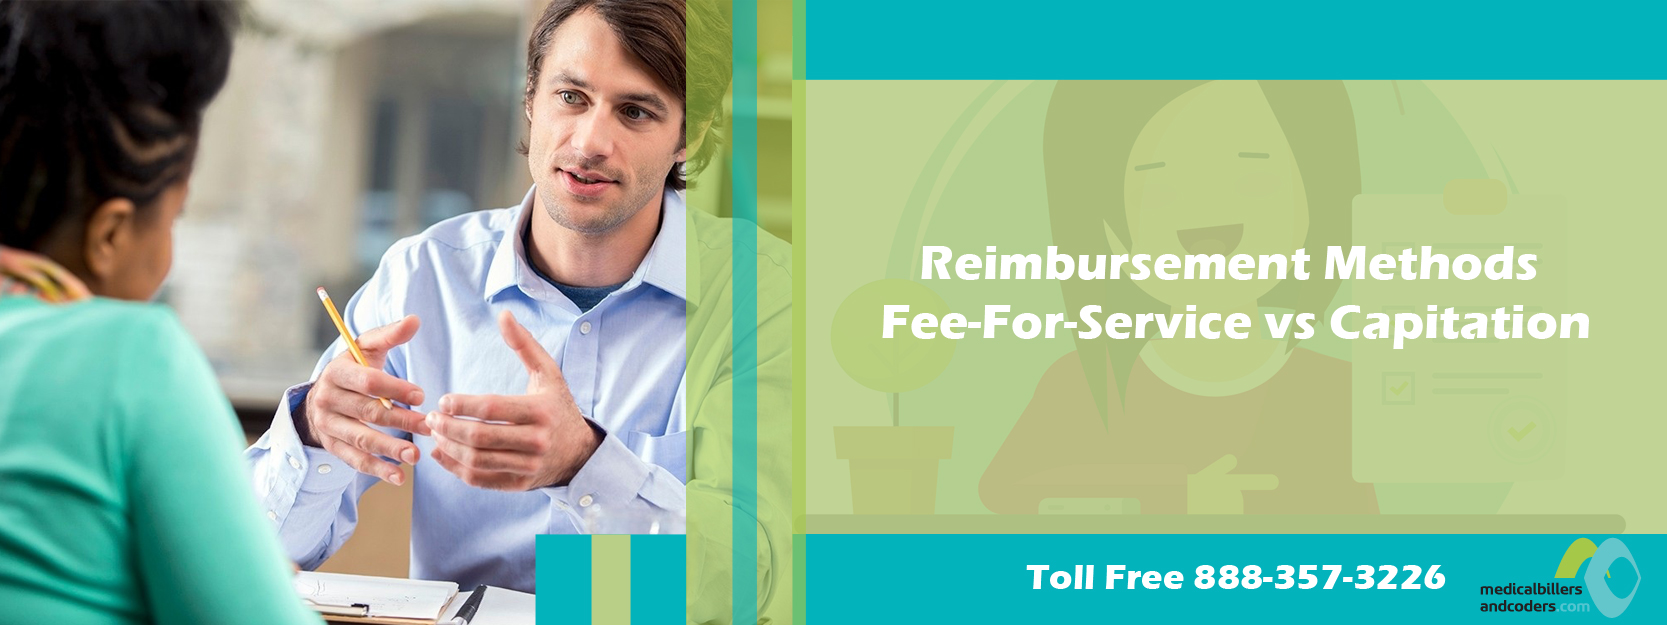 reimbursement-methods-fee-for-service-vs-capitation